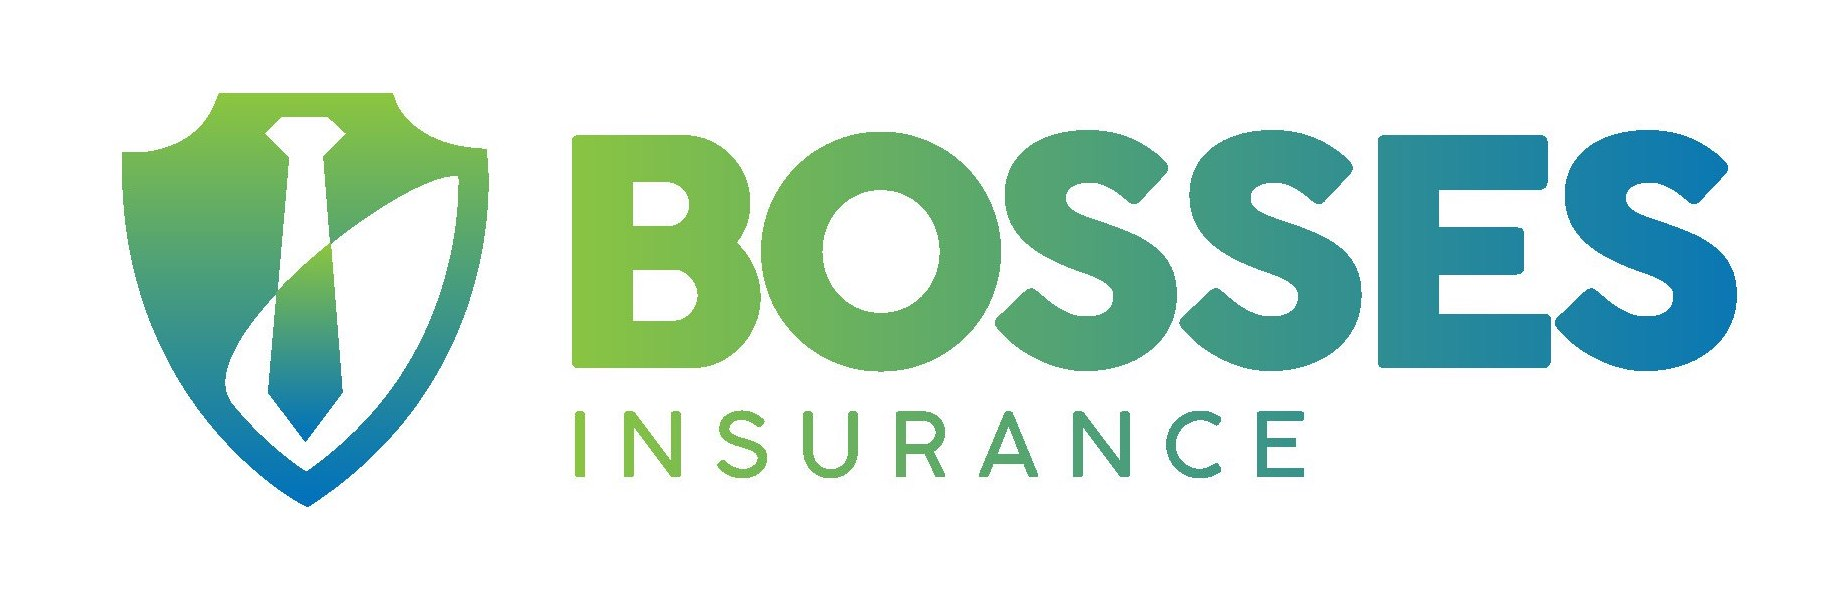 Bosses Insurance Company Logo